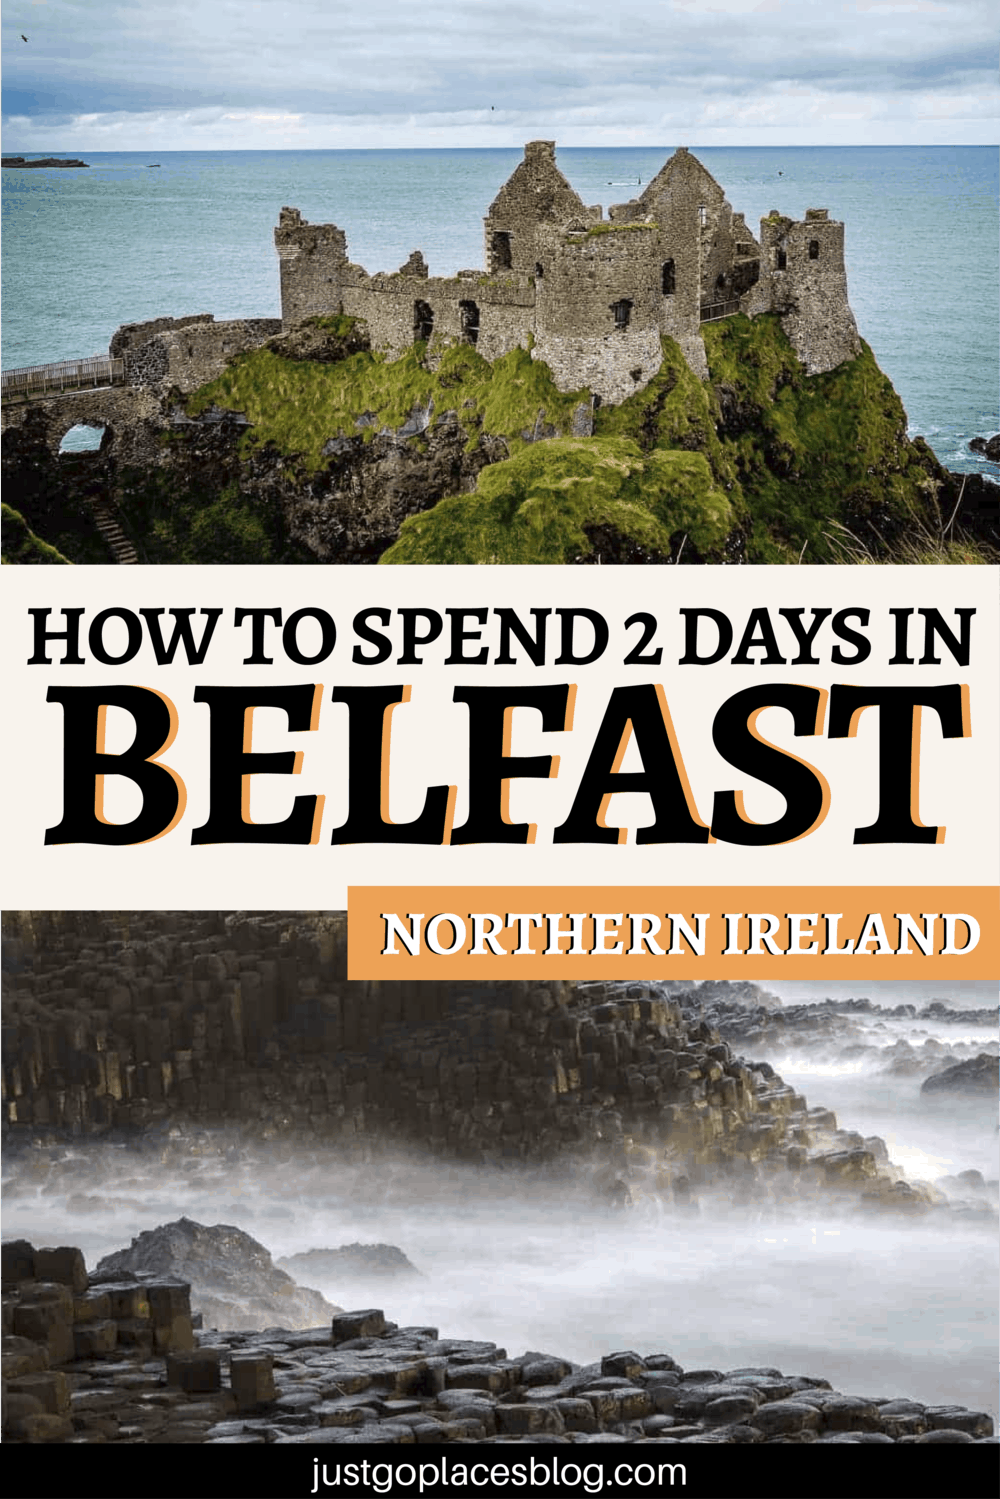 How To Spend 2 Days in Belfast Northern Ireland